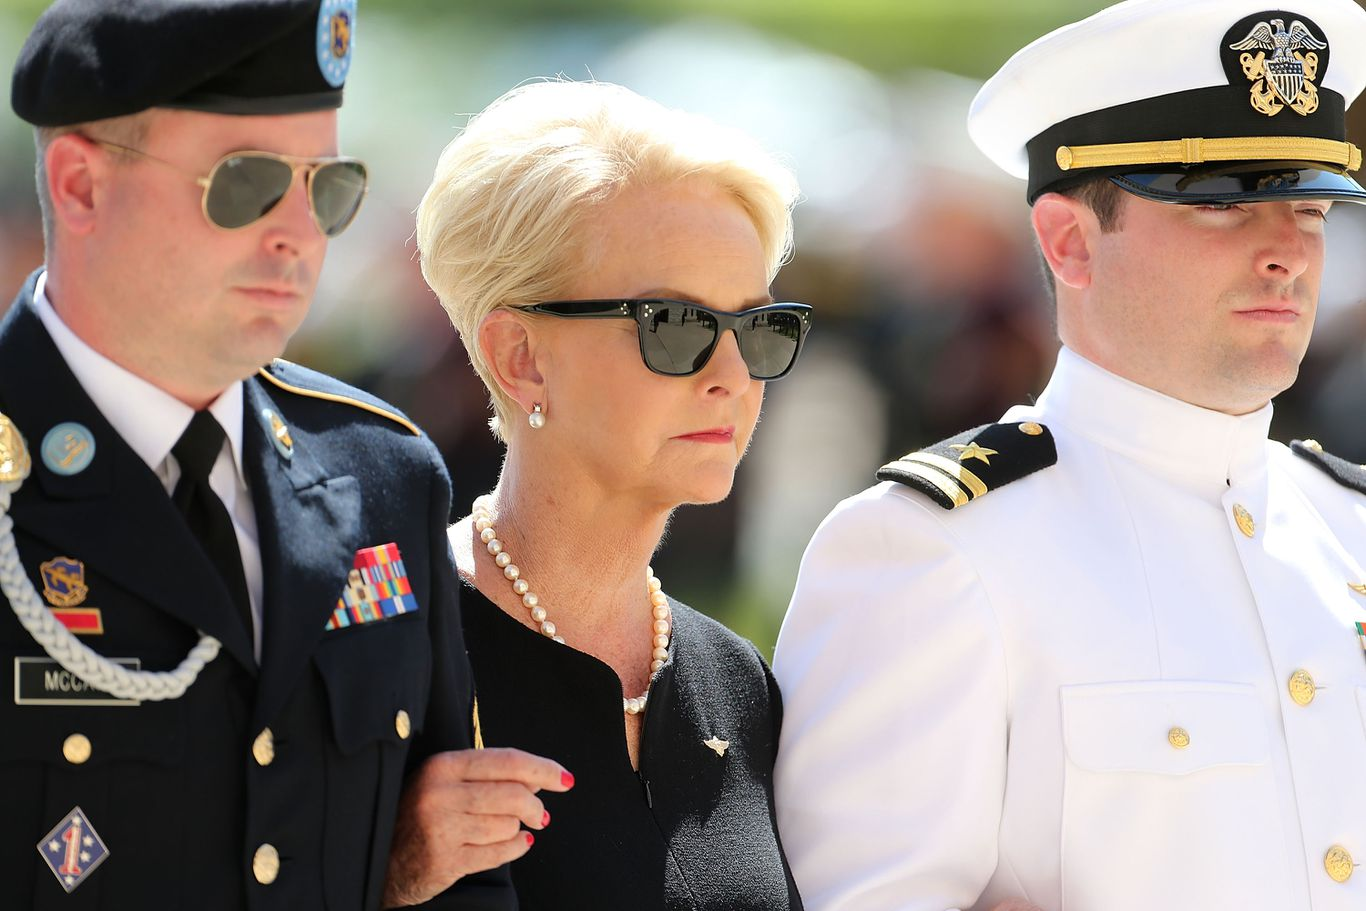 Cindy McCain to formally endorse Joe Biden